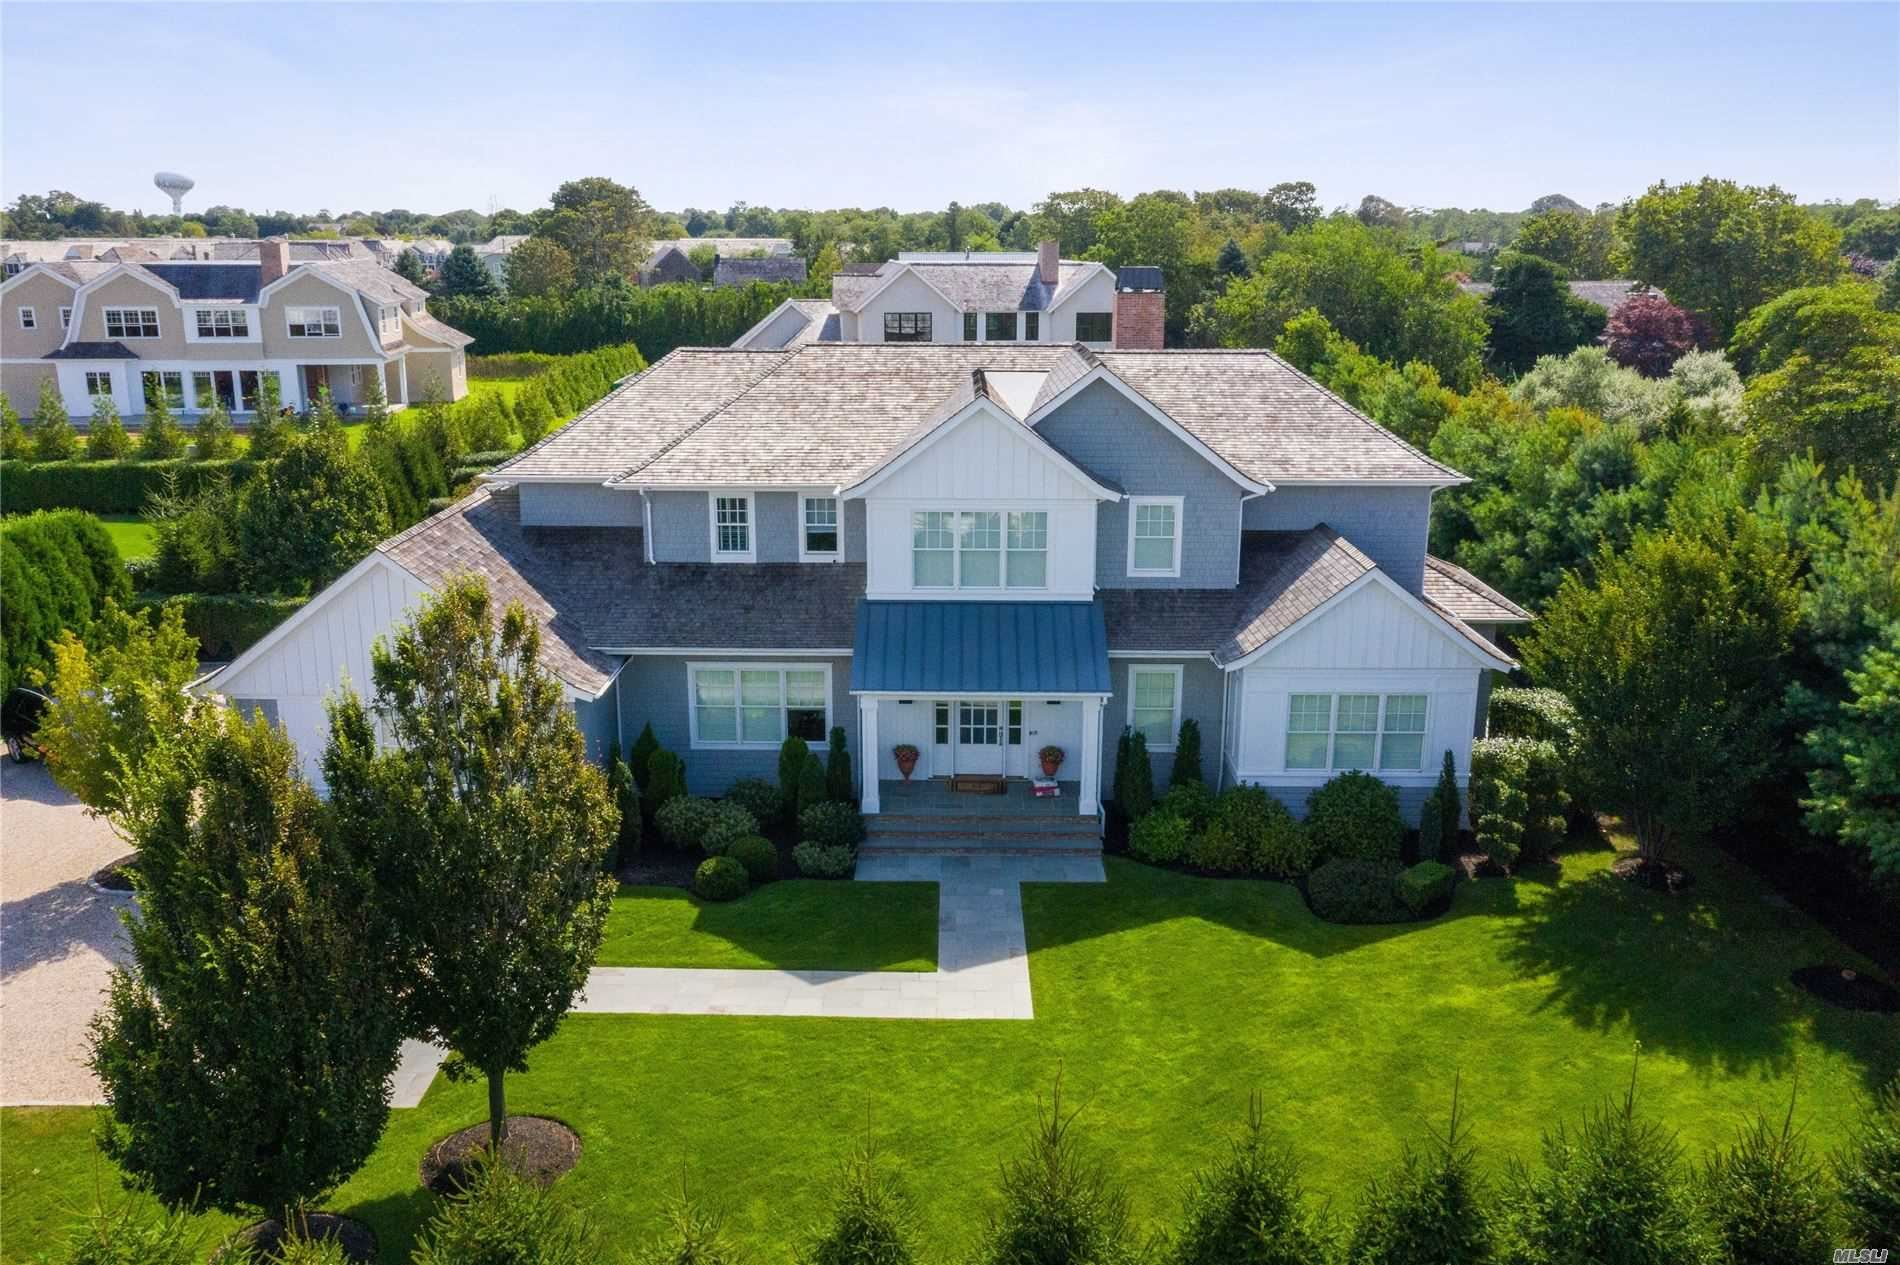 11 Corbett Dr Tbb Drive, East Quogue, NY 11942 - MLS#: 3246521